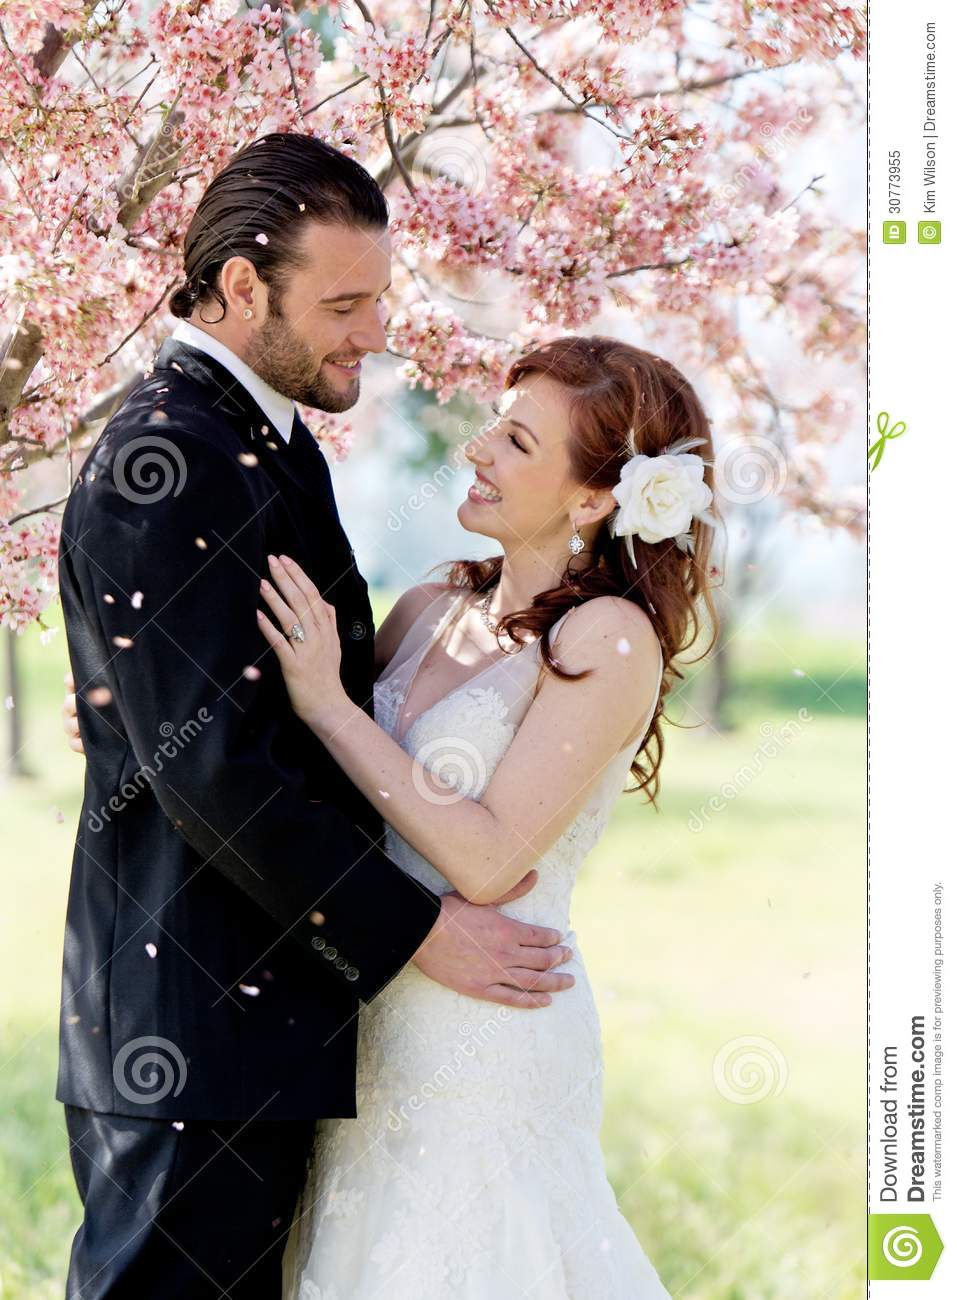 Bridal Couple Showered By Cherry Blossom Petals Stock